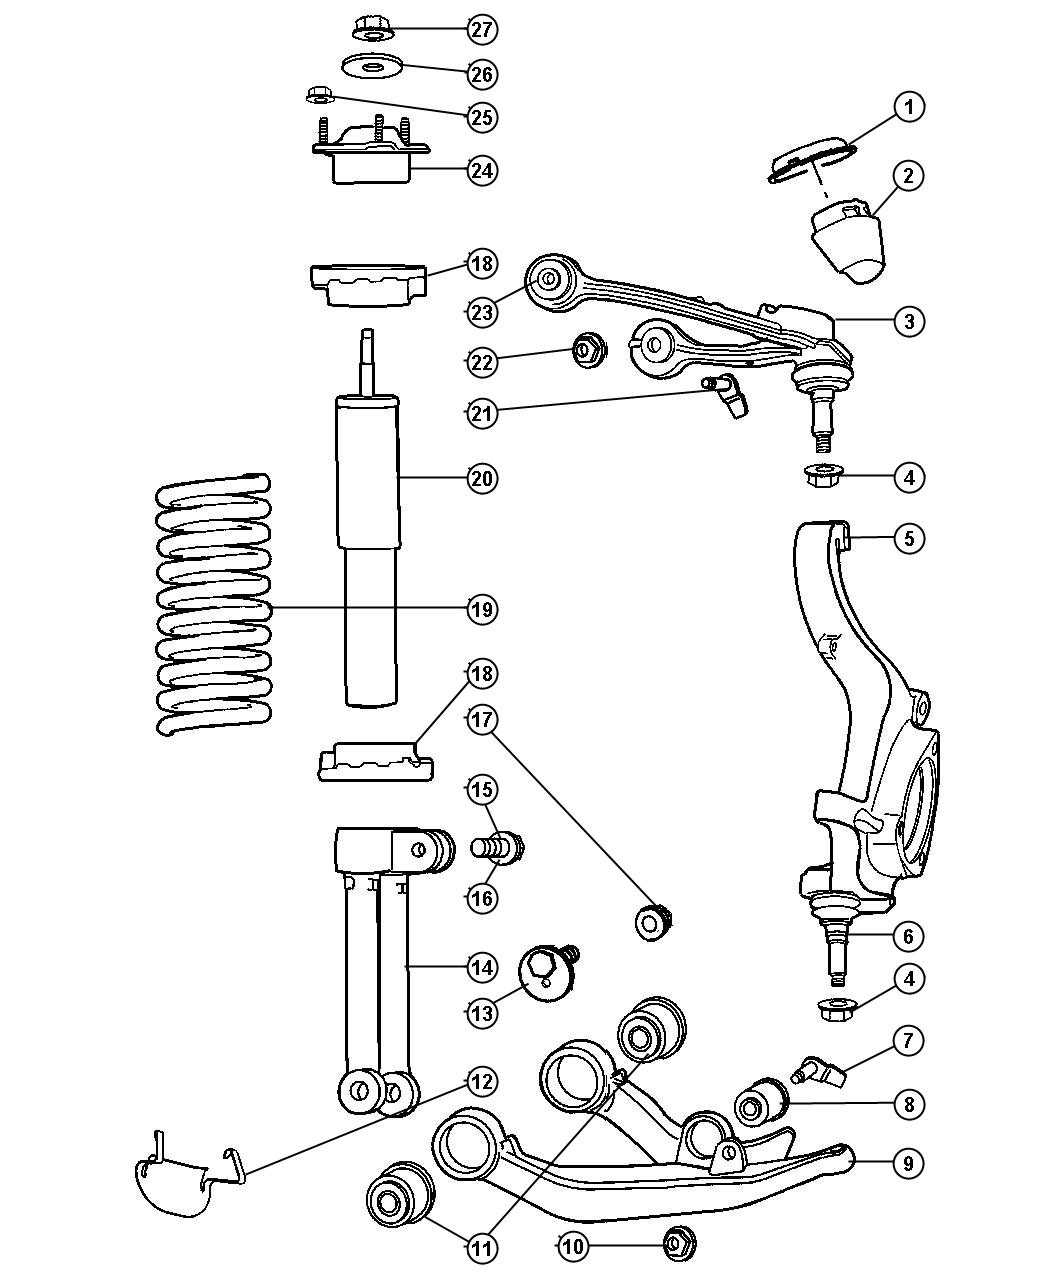 Jeep Liberty Used For Bolt And Washer Used For